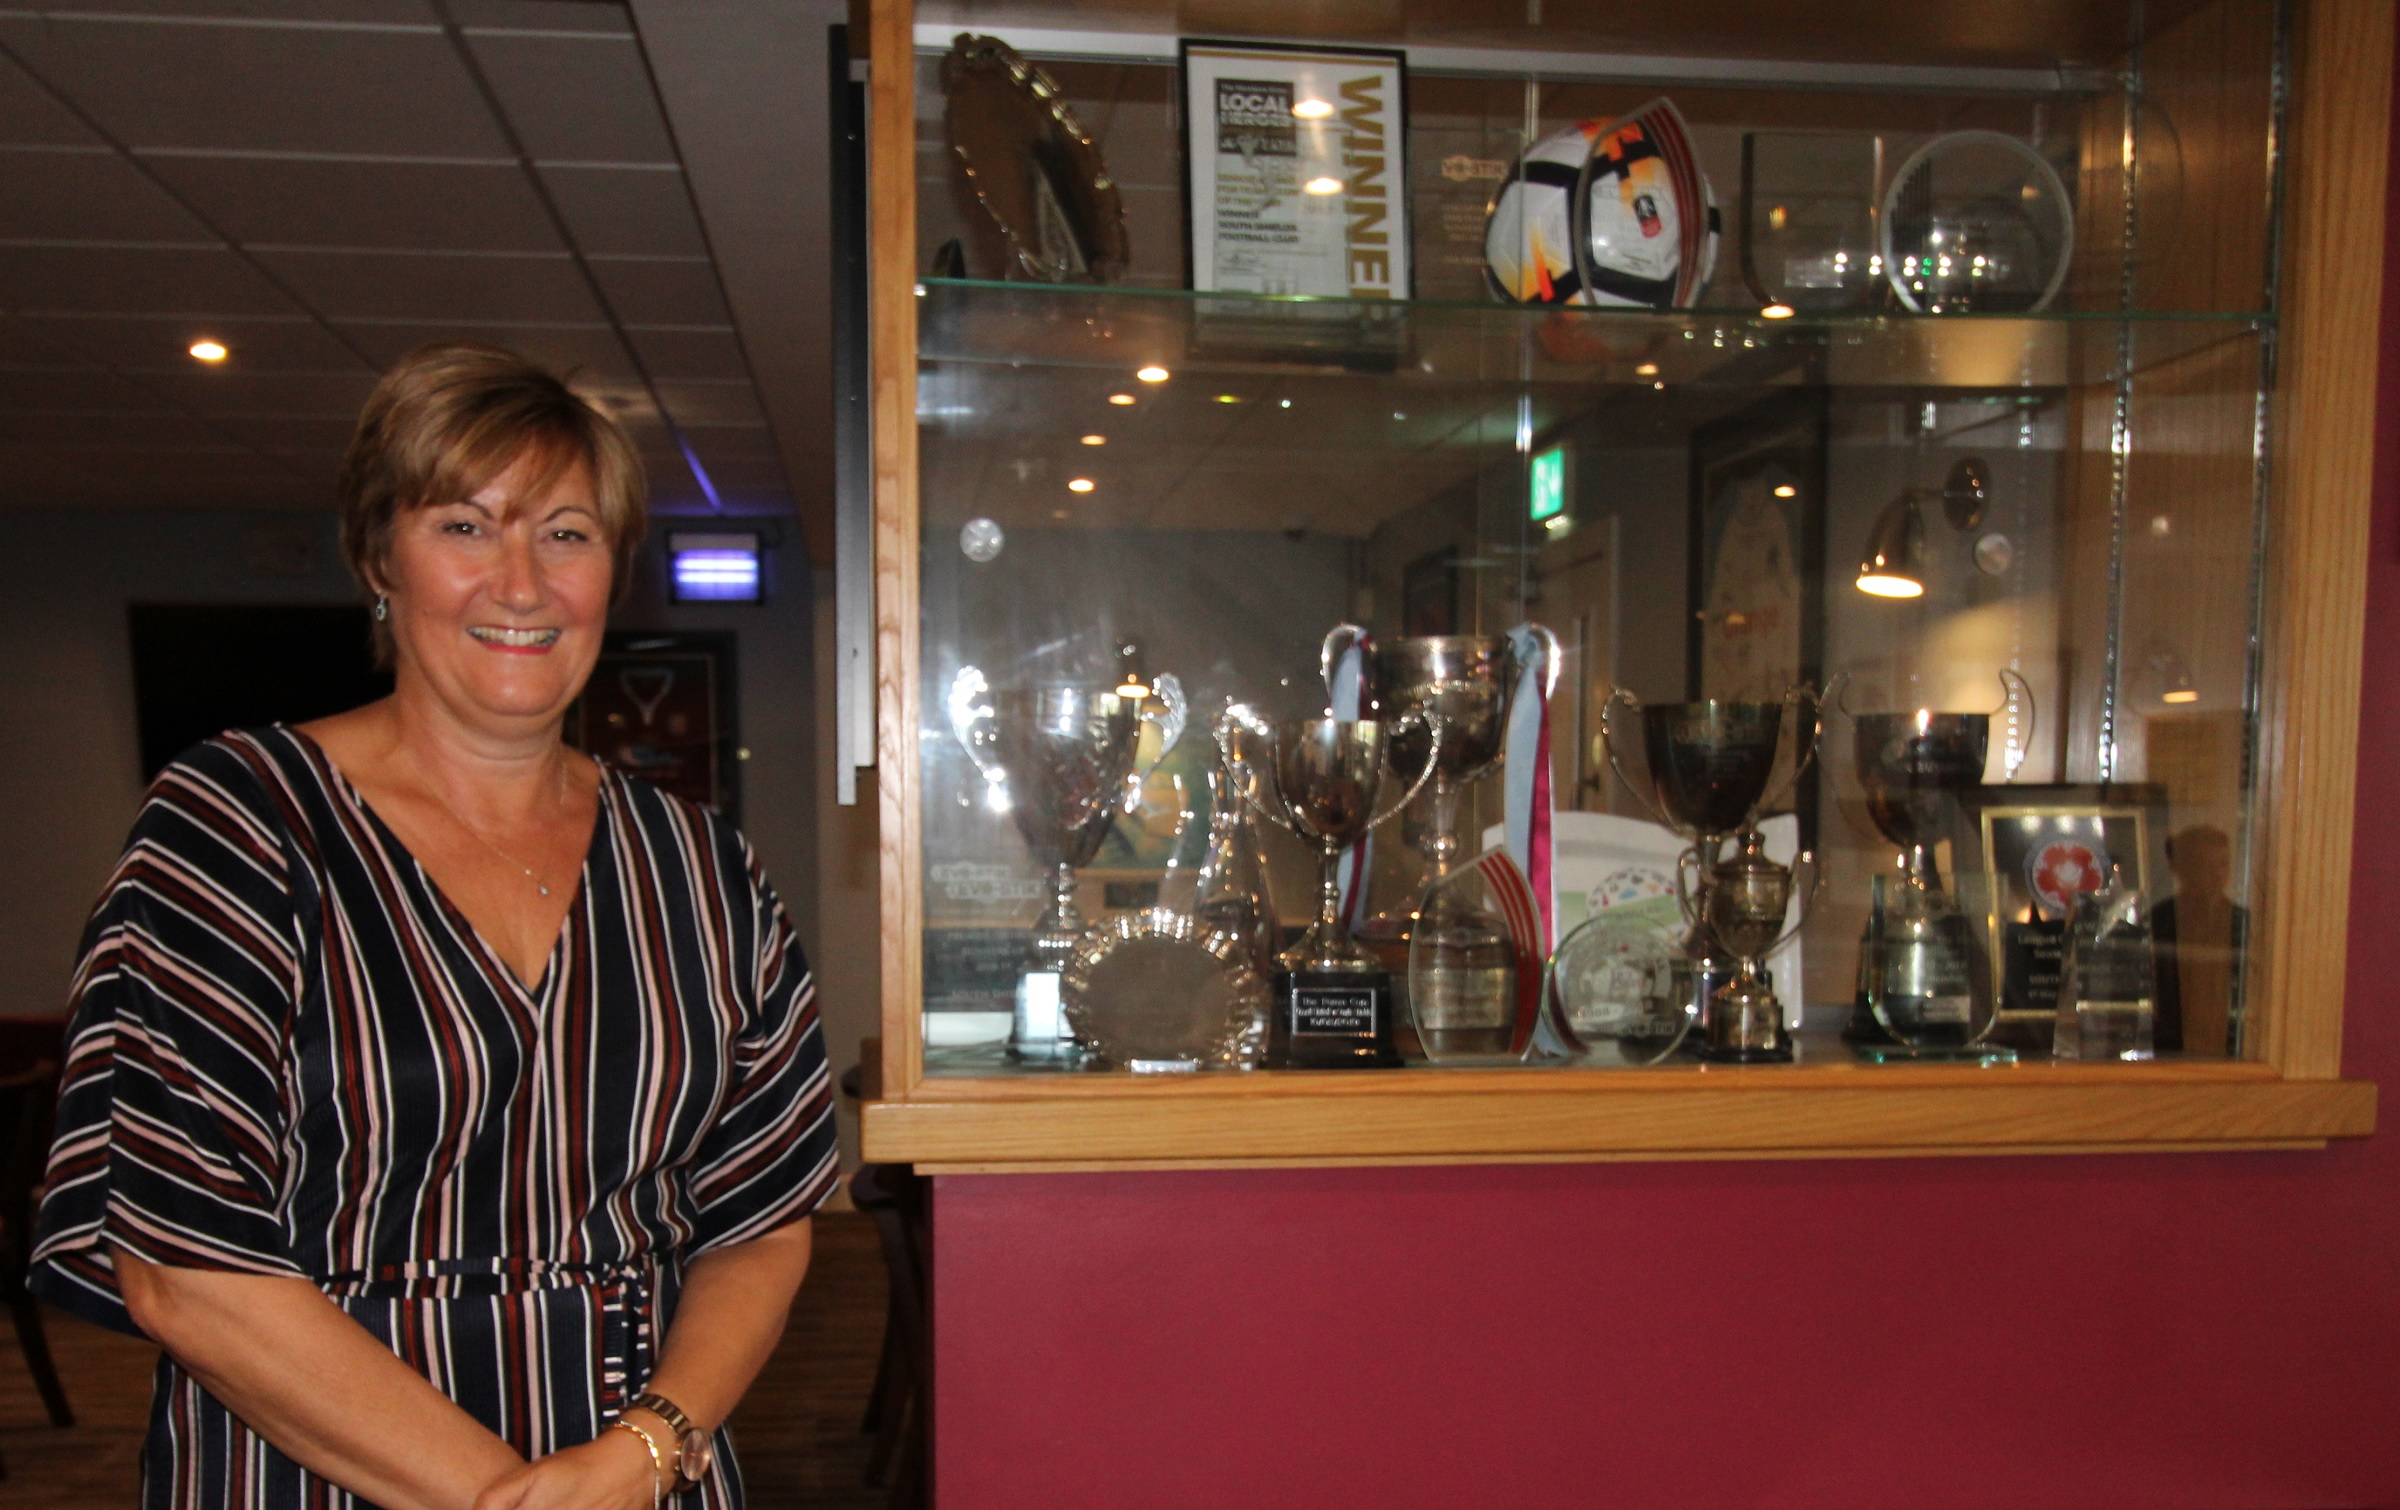 Club appoints Joanne Howe as Non-Executive Director